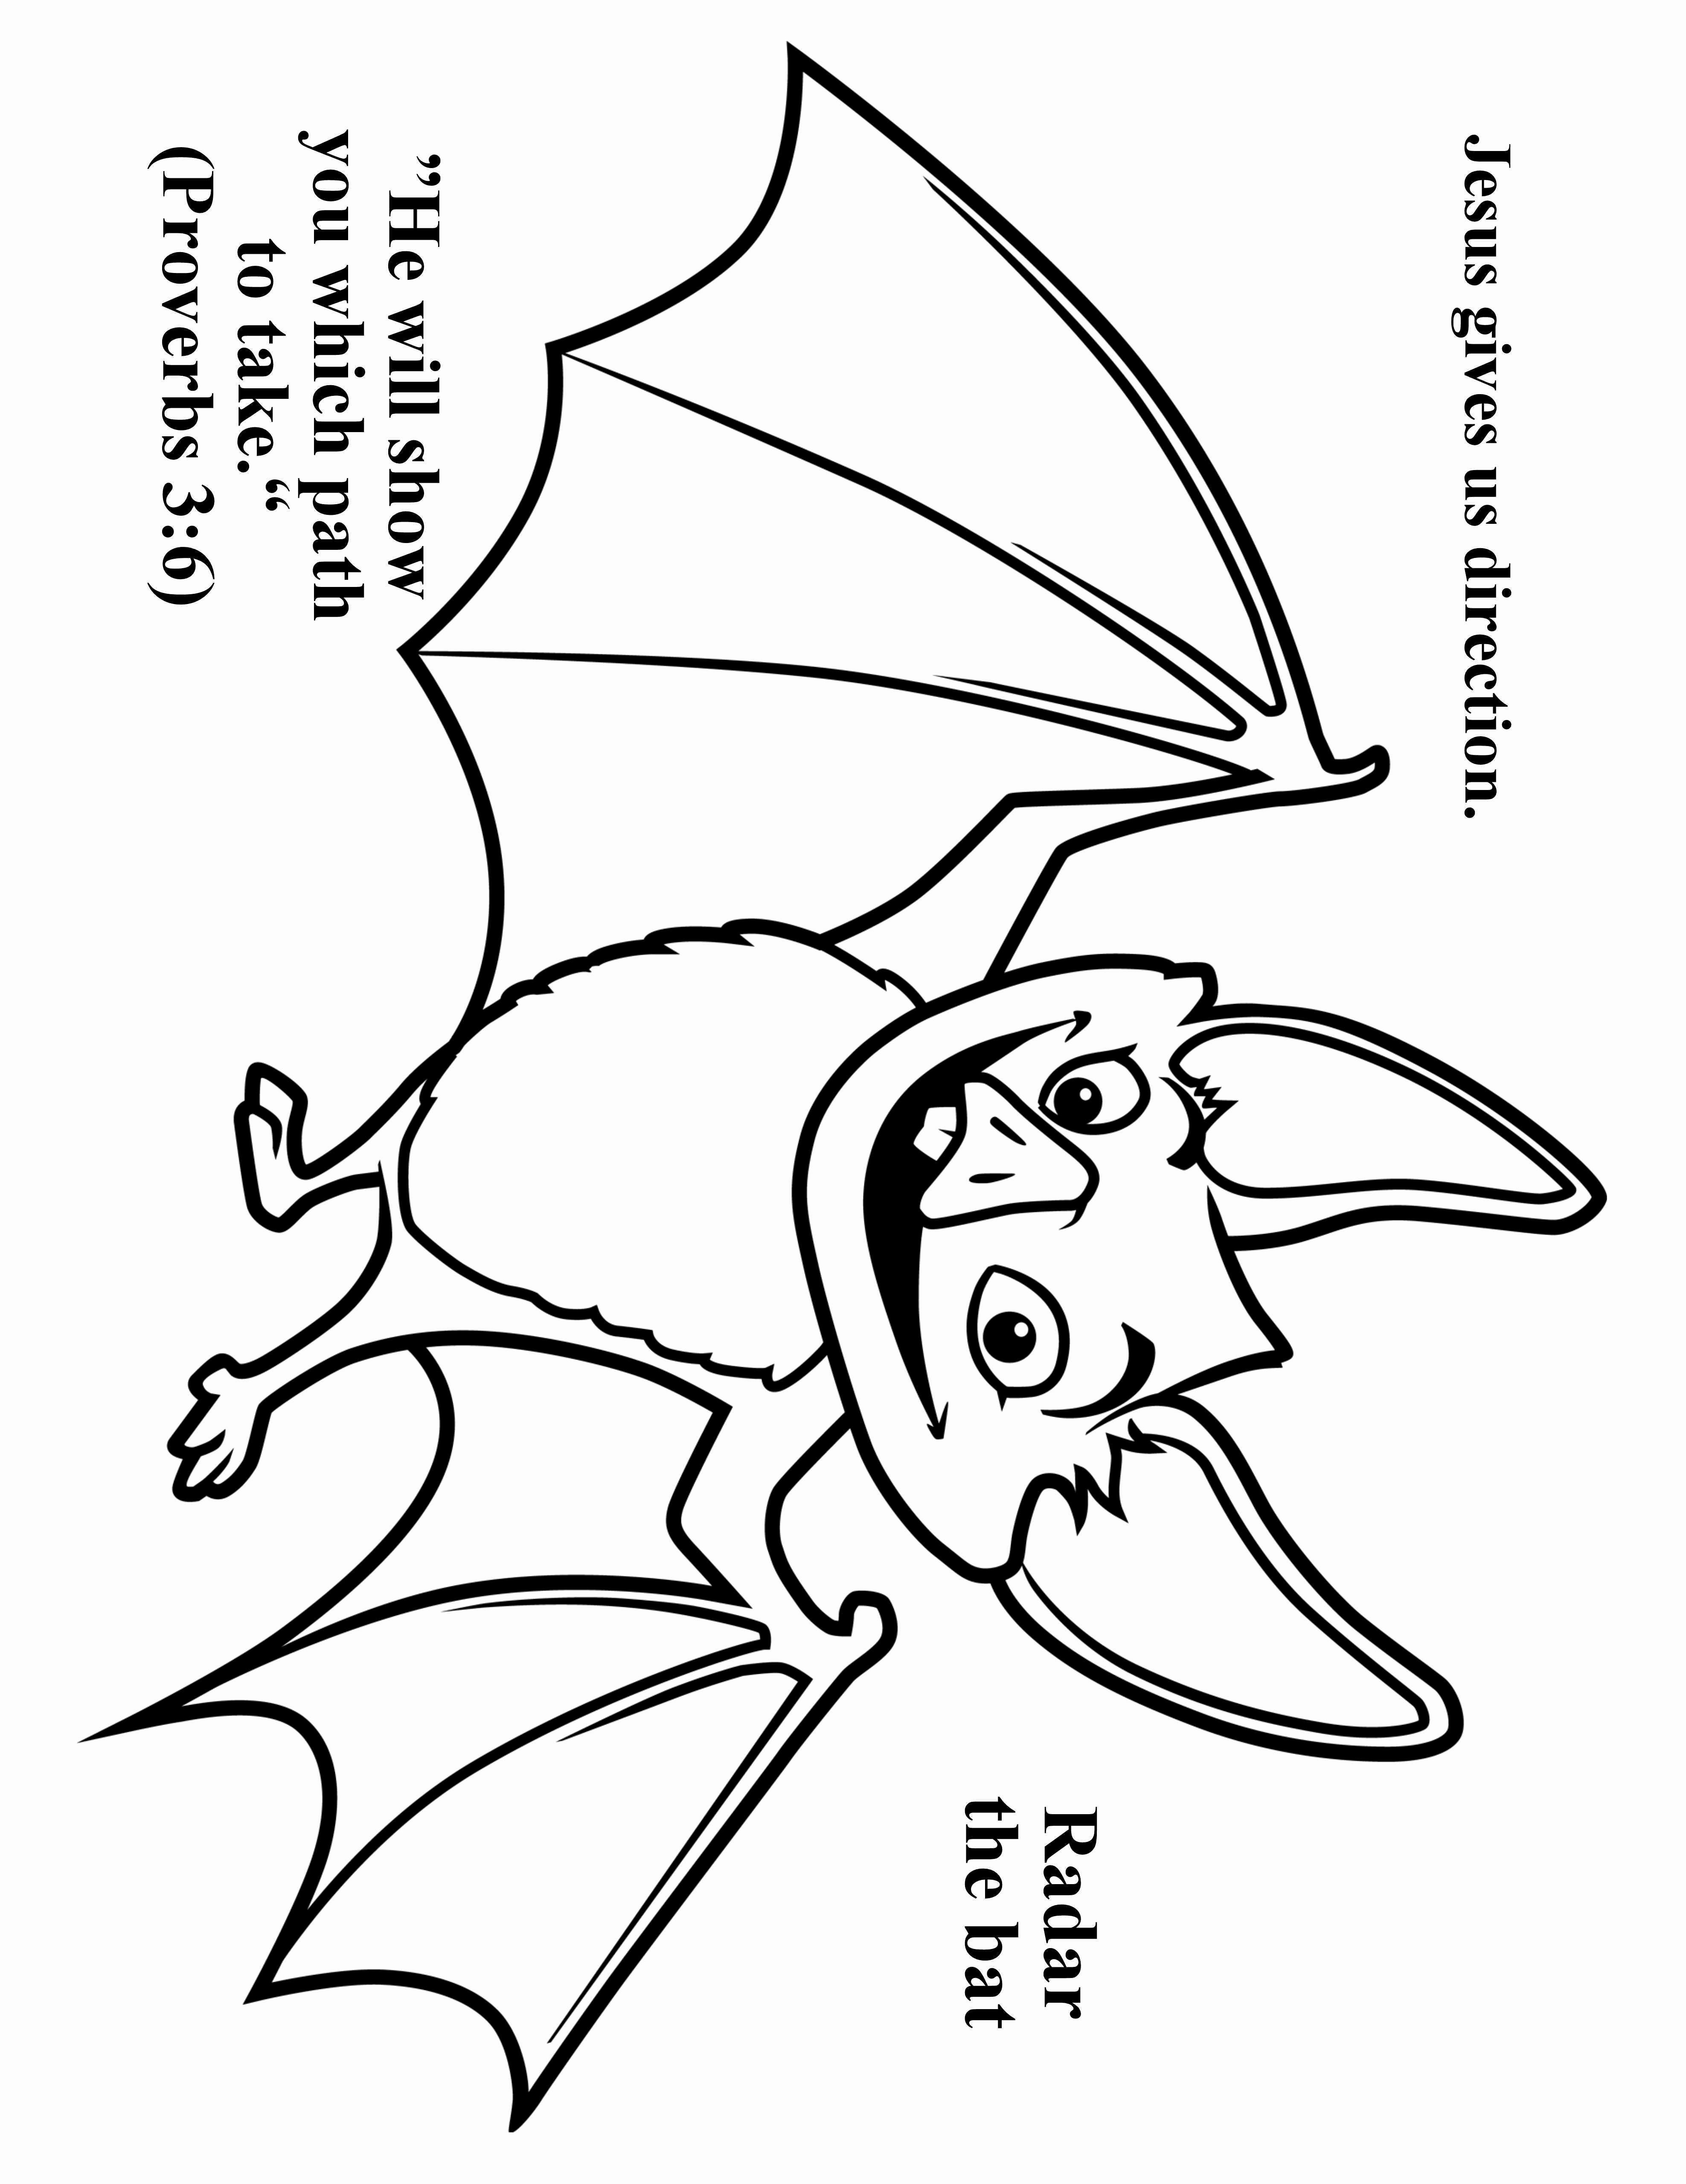 Pre K Coloring Pages Free Fresh New Bat Dog Coloring Pages